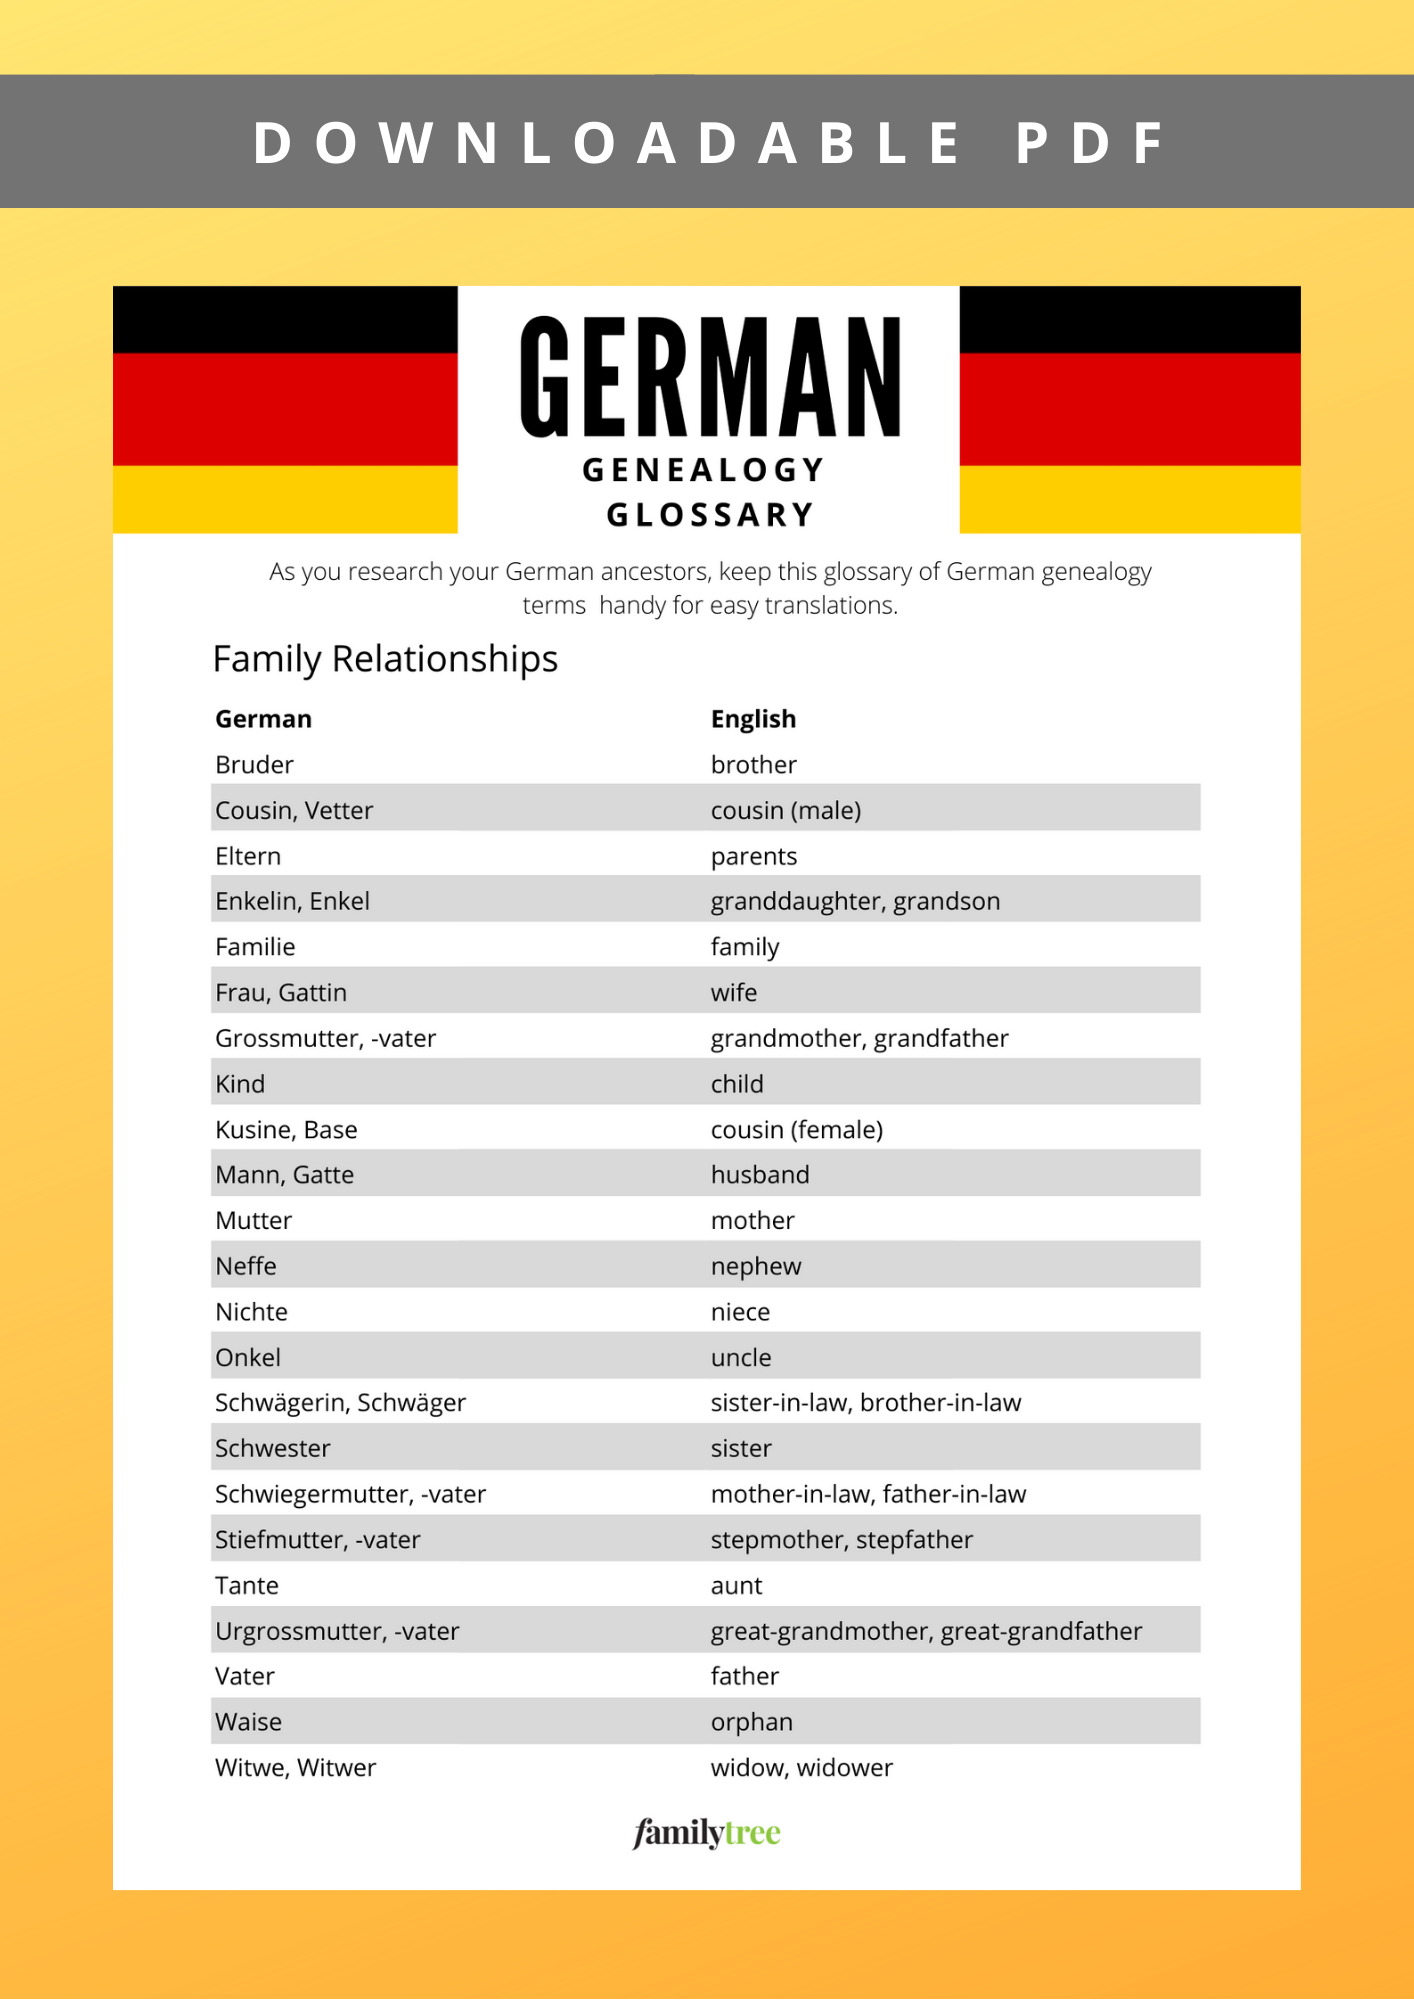 Free German Genealogy Terms Reference Charts In 2020 Genealogy Family Tree Research Family Tree Genealogy